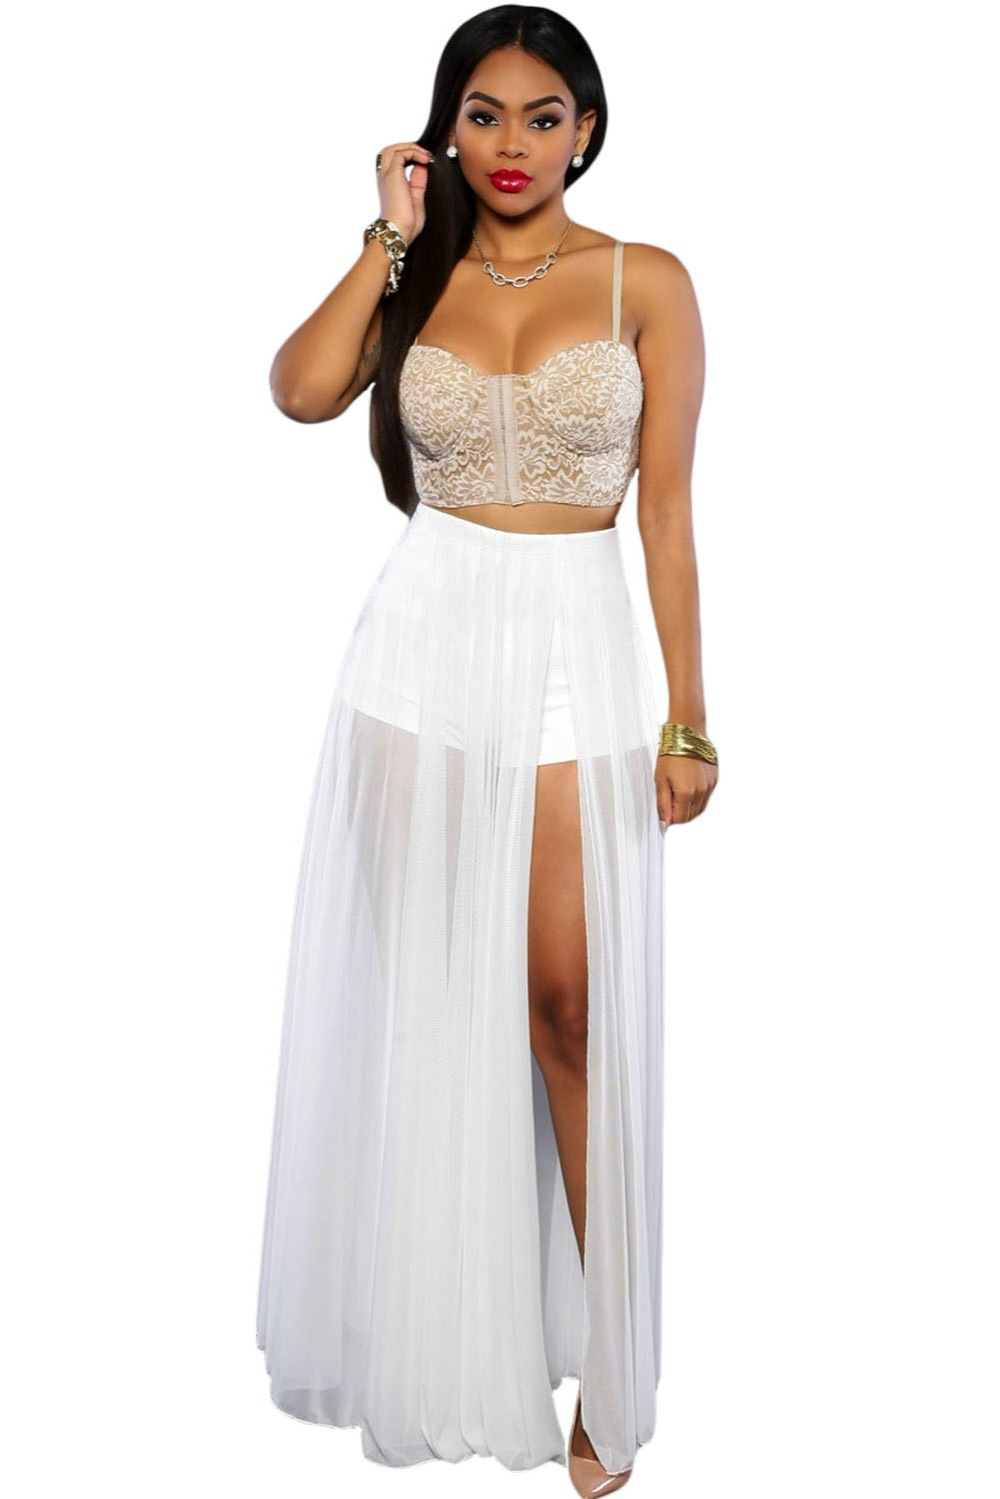 Compare Prices on Maxi Skirt Slit- Online Shopping/Buy Low Price ...